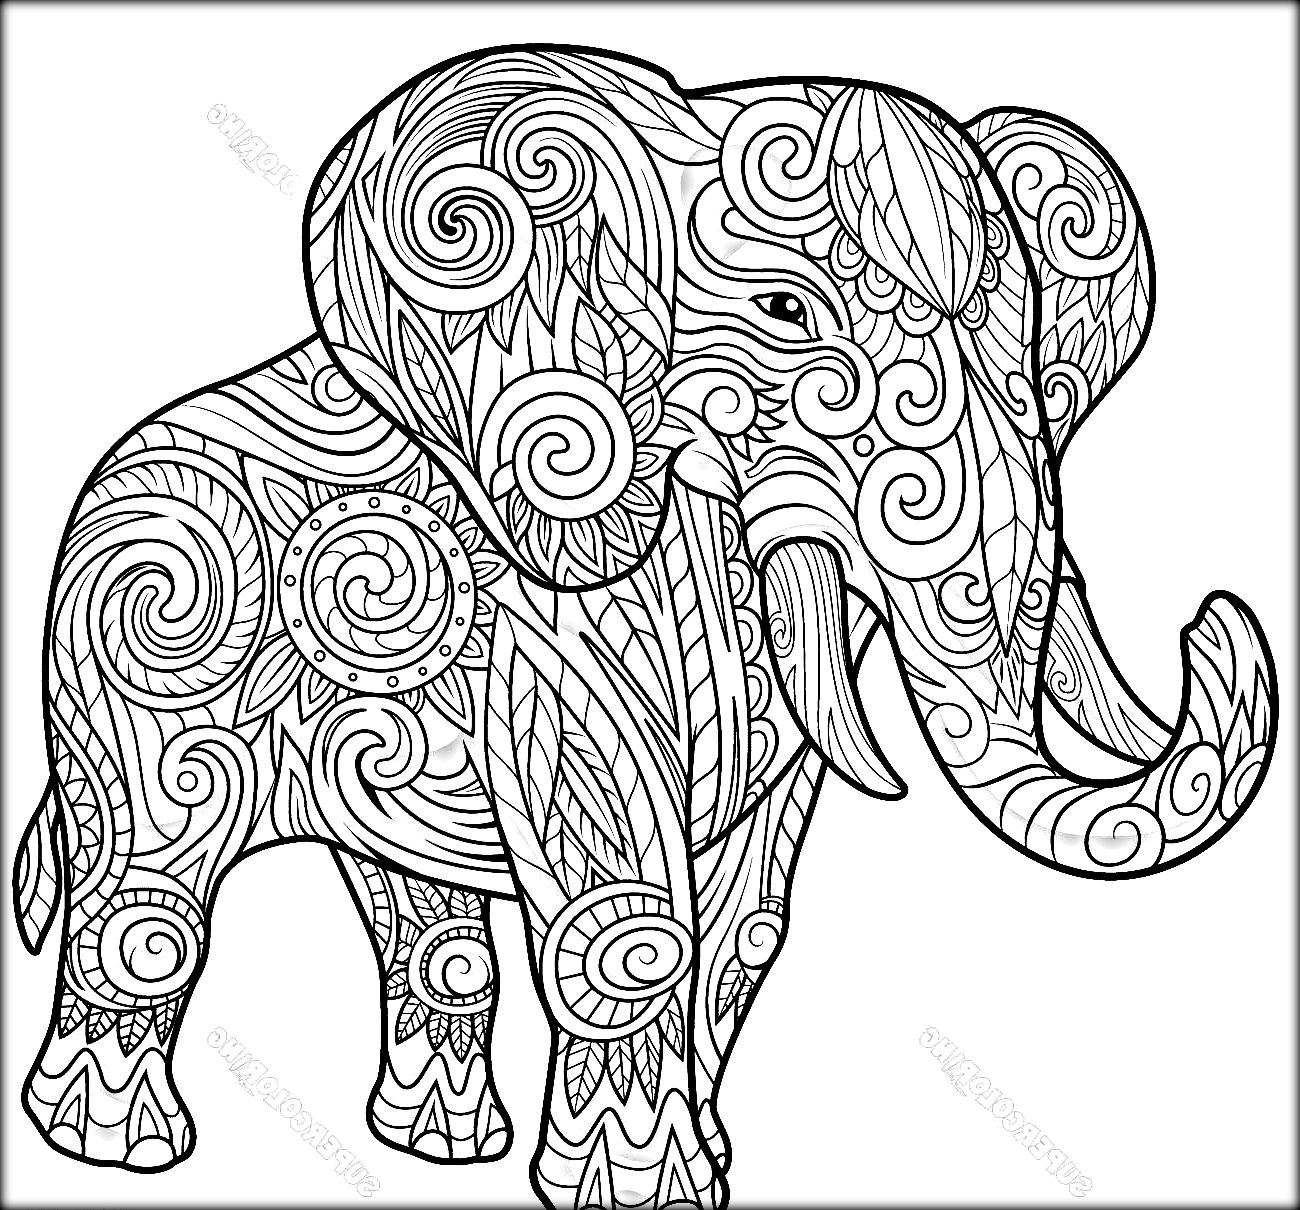 1300x1210 Printable Adult Coloring Pages Abstract Elephants Free Download